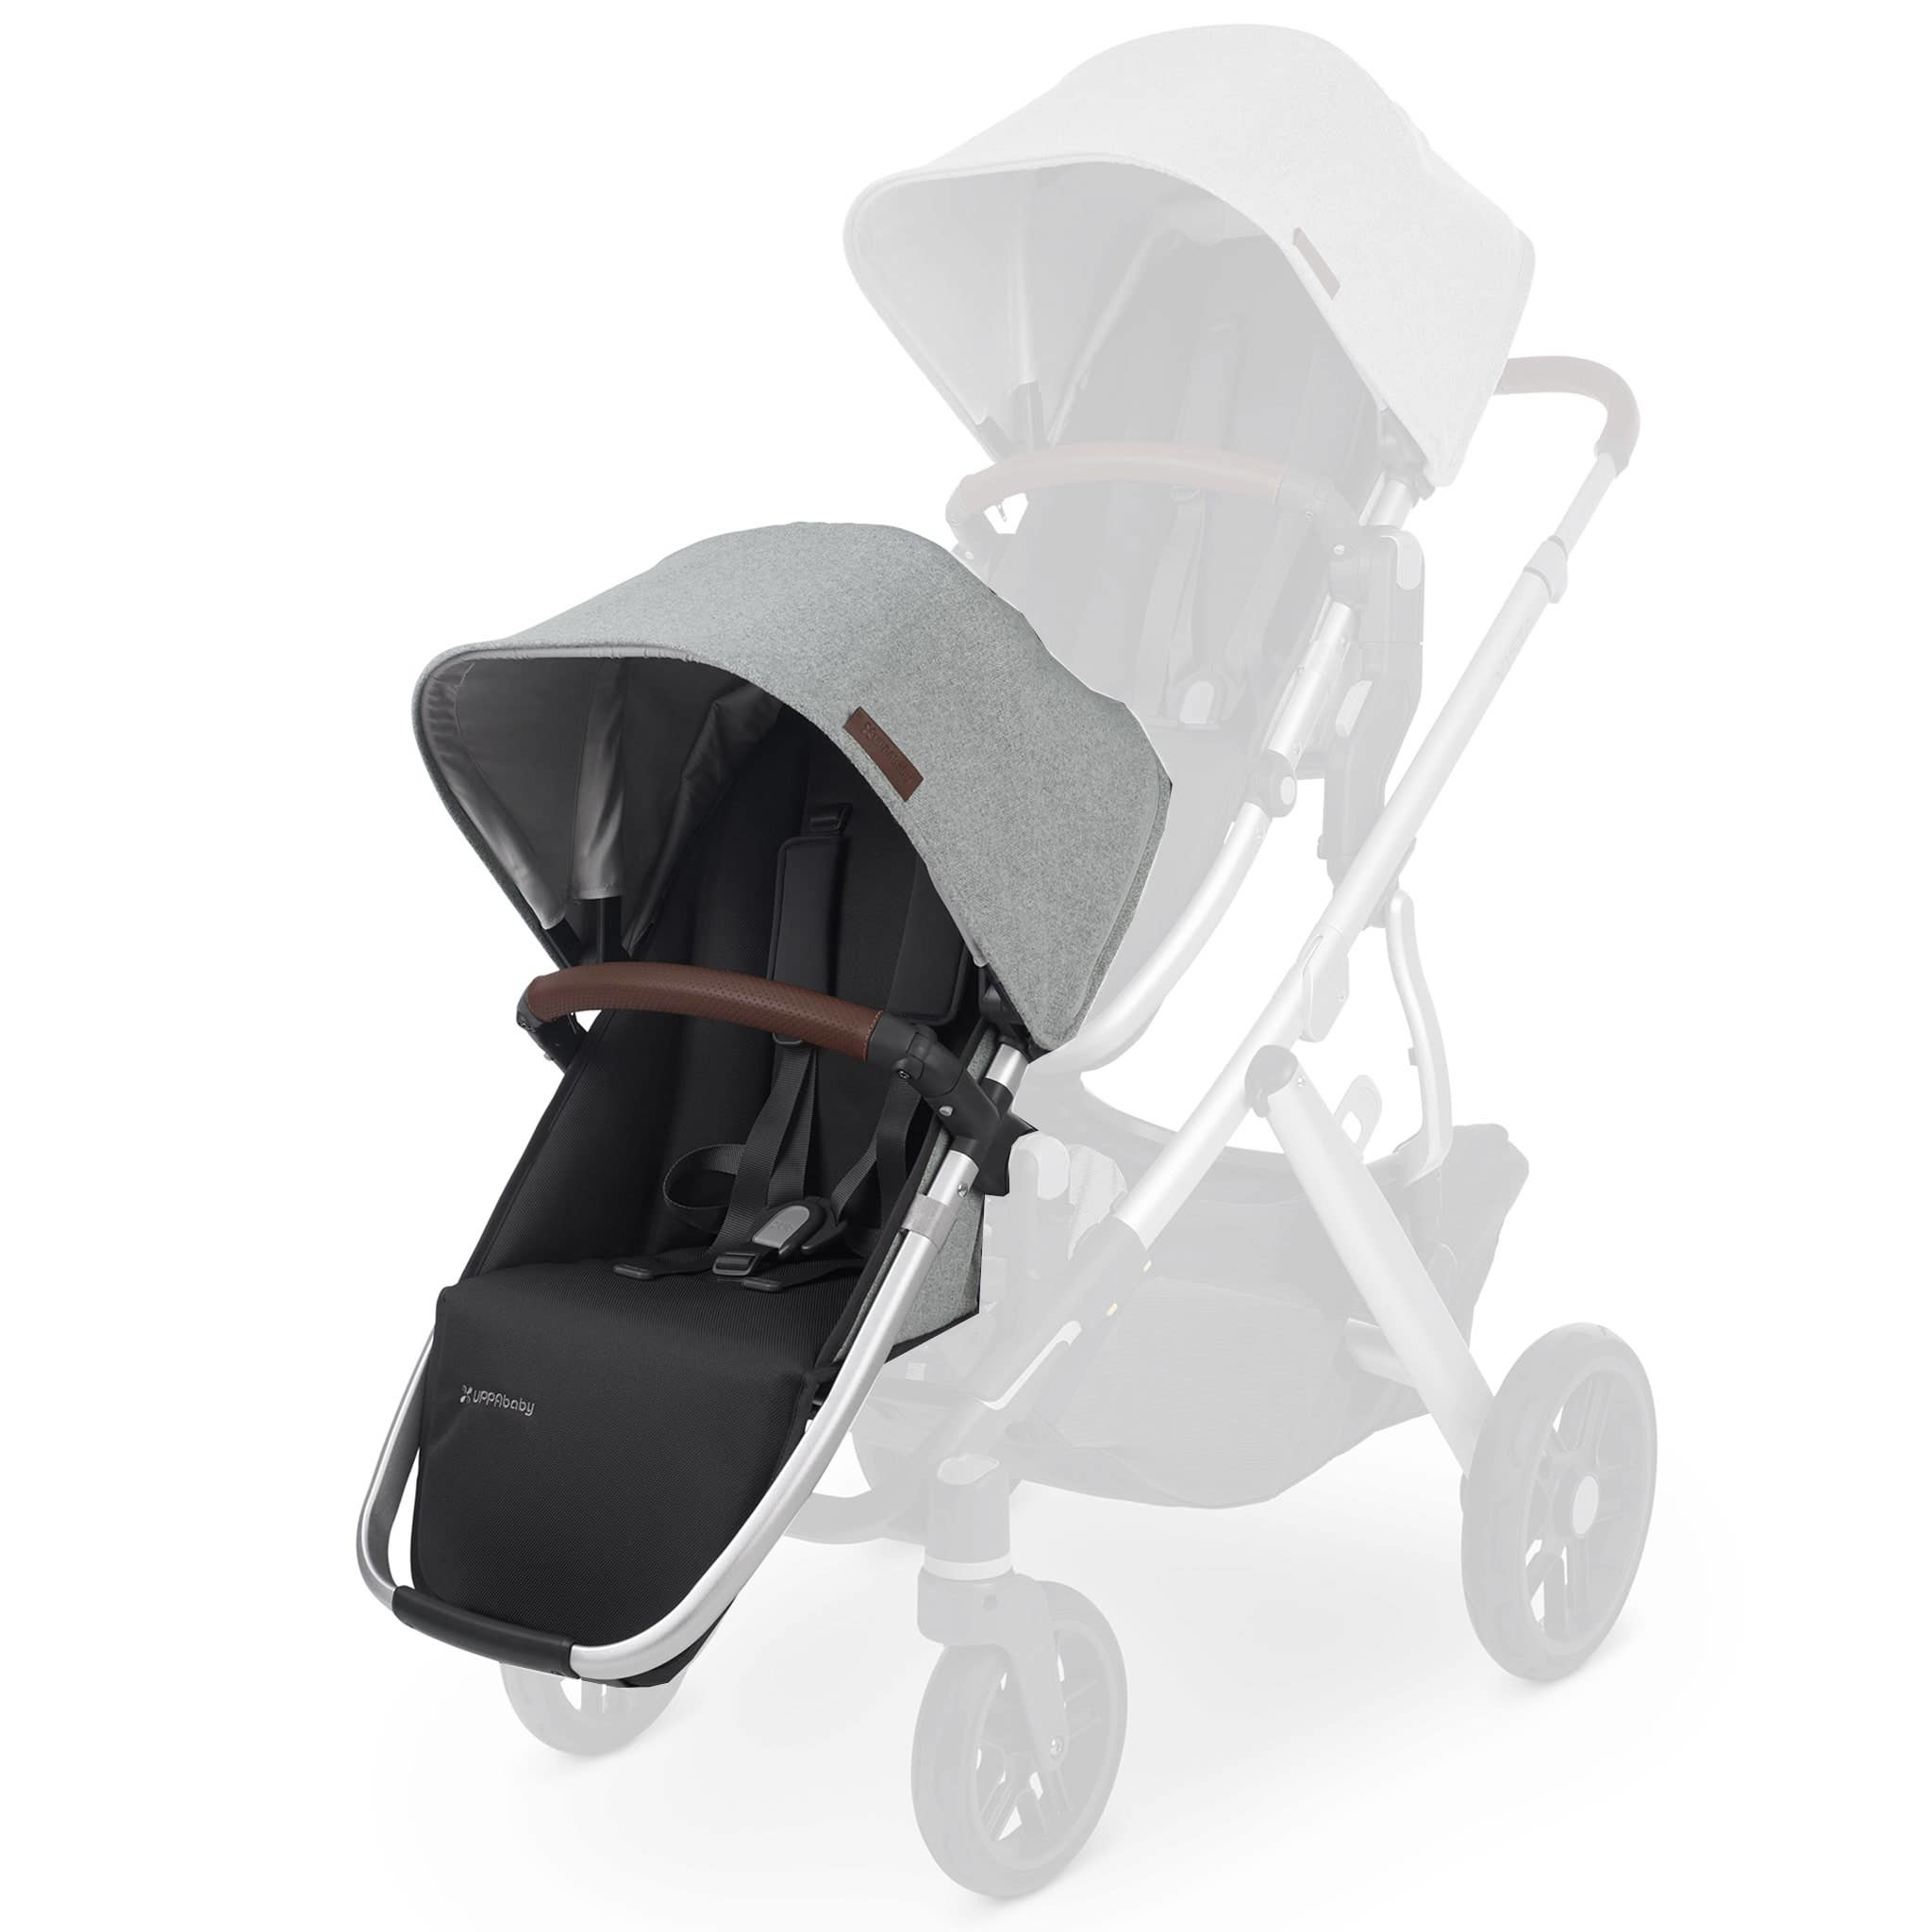 UPPAbaby V2 Rumble Seat